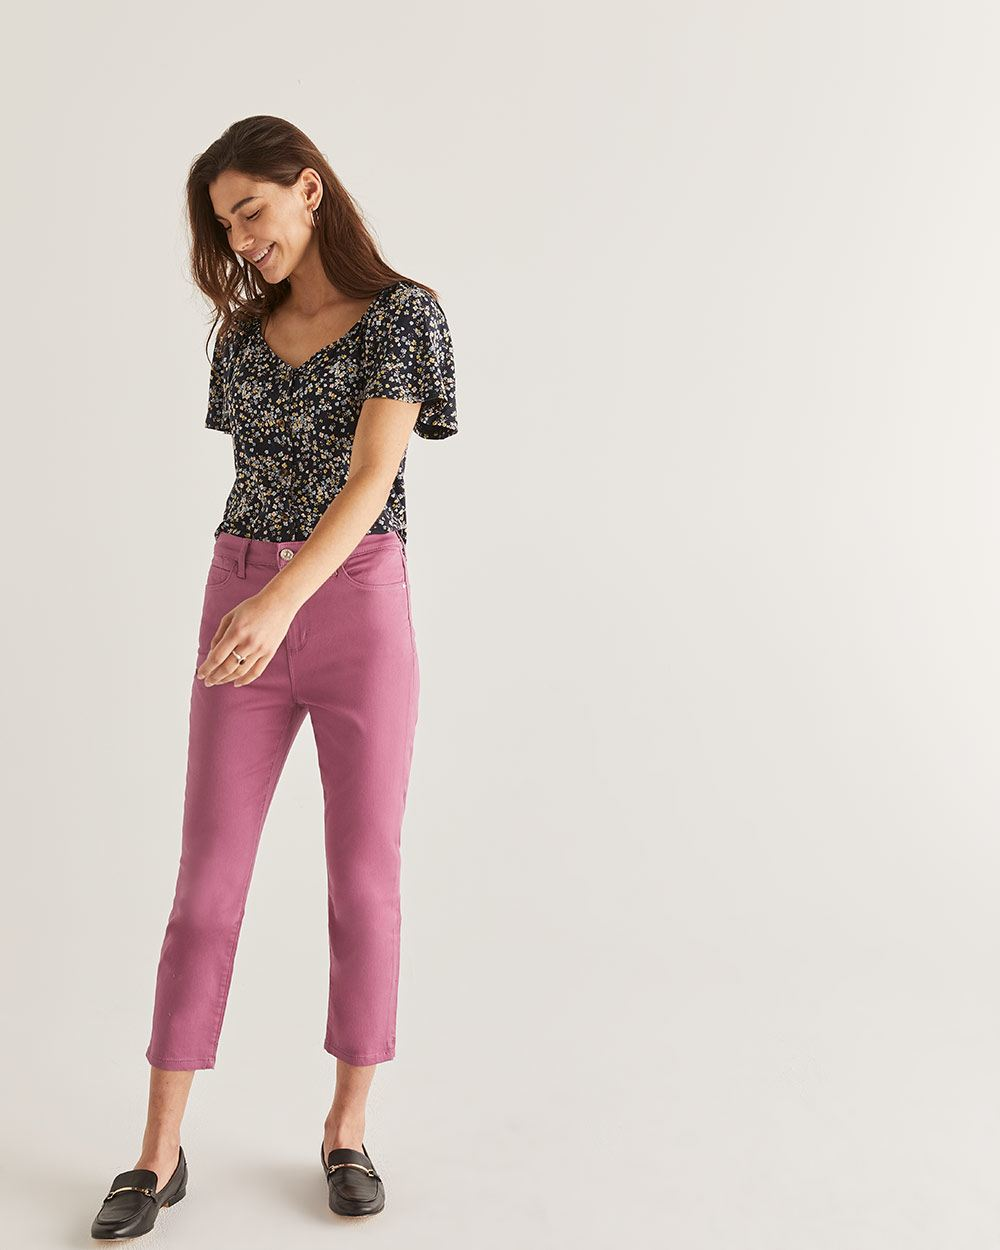 The Signature Soft Cropped Jeans